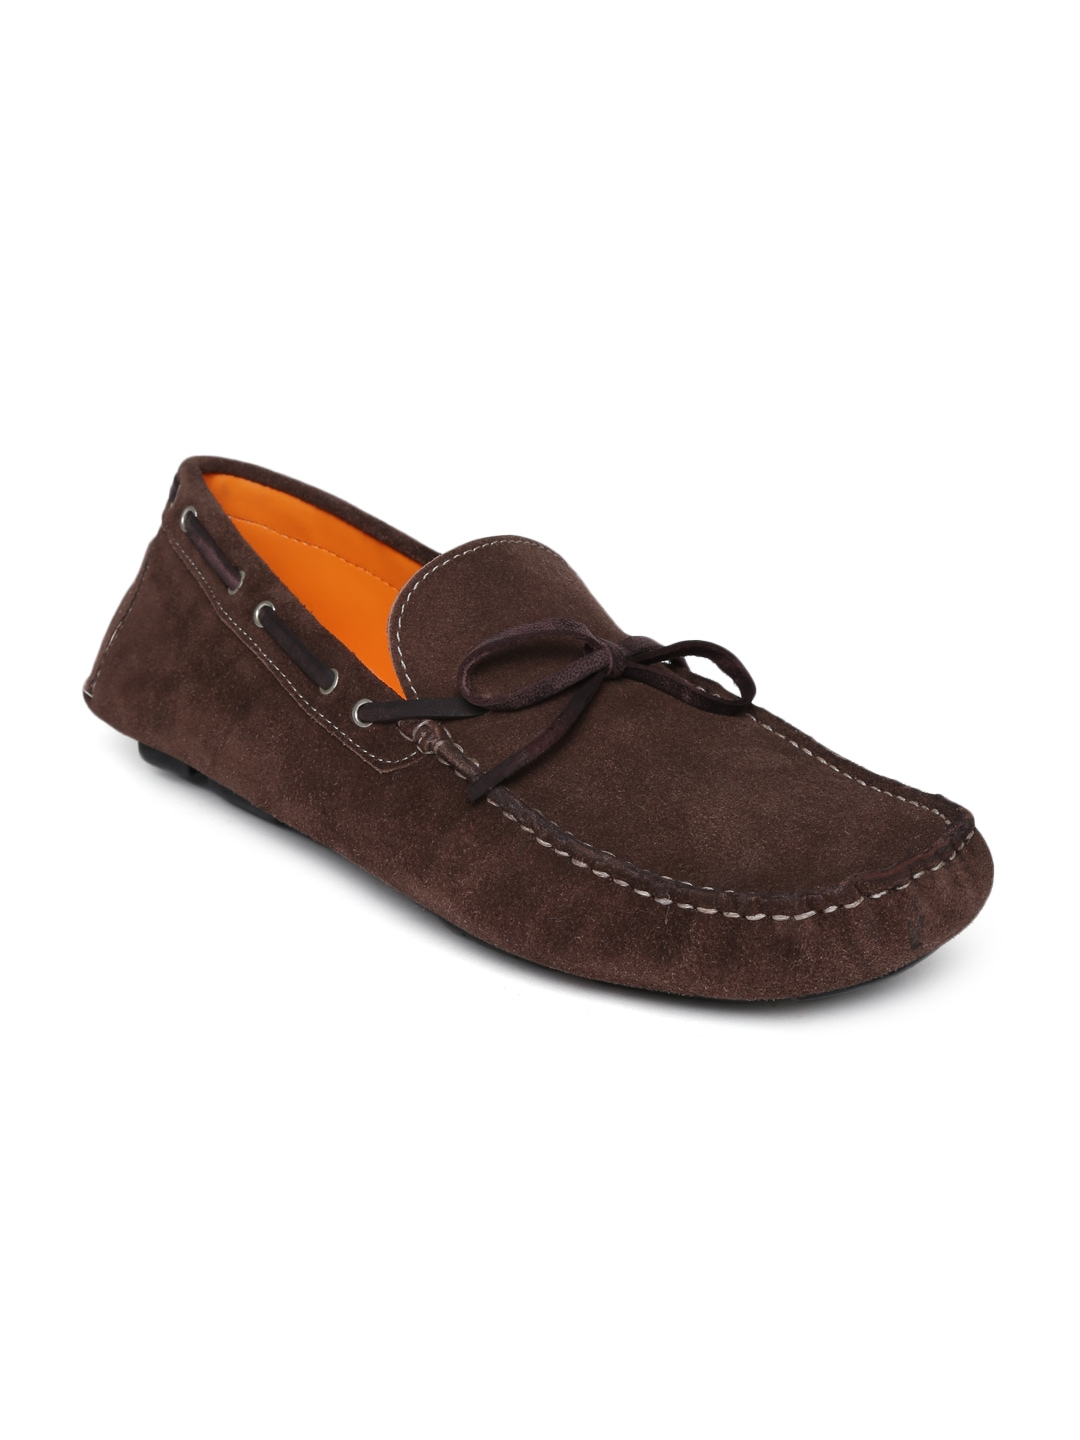 Famozi Famozi Men Coffee Brown Leather Boat Shoes (Multicolor)